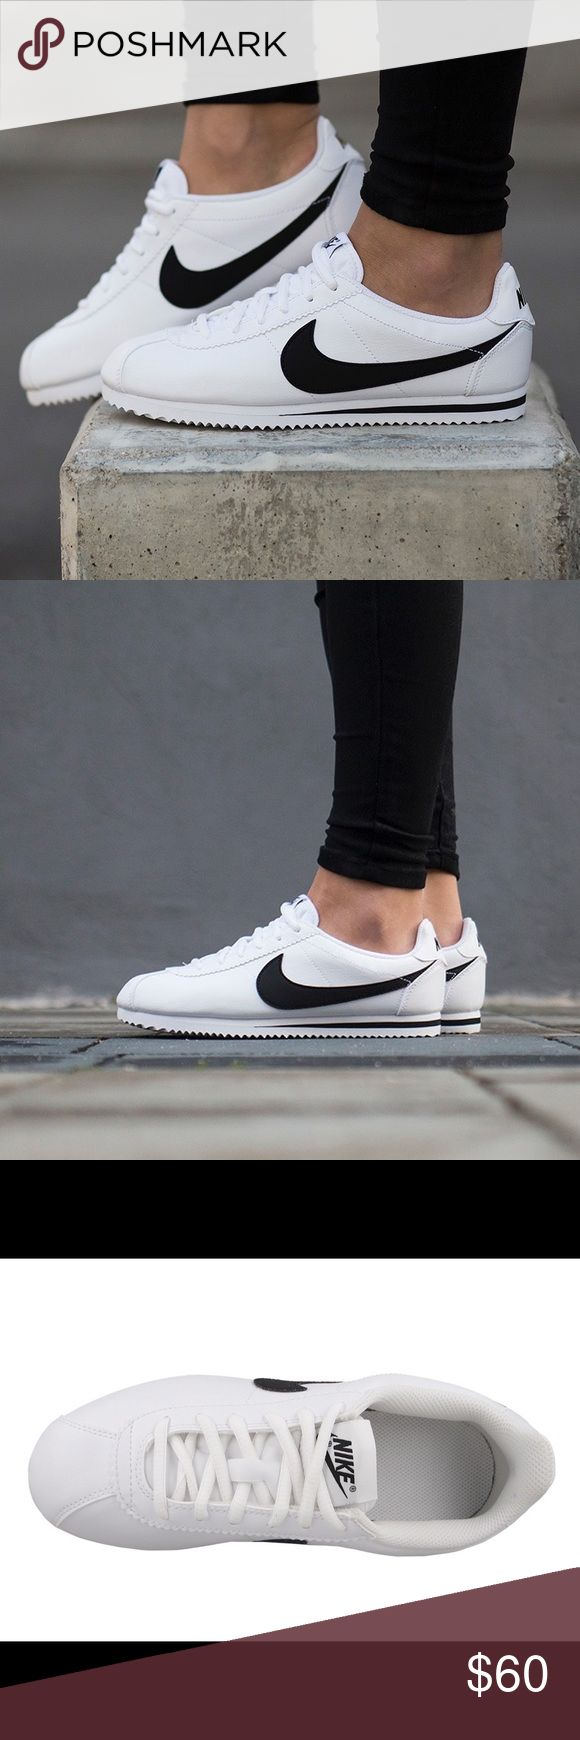 NIKE CORTEZ WOMENS WHITE BLACK SHOES Shoes are a size 7 youth. Which is a women's size 8.5. Brand new without box Nike Shoes Sneakers